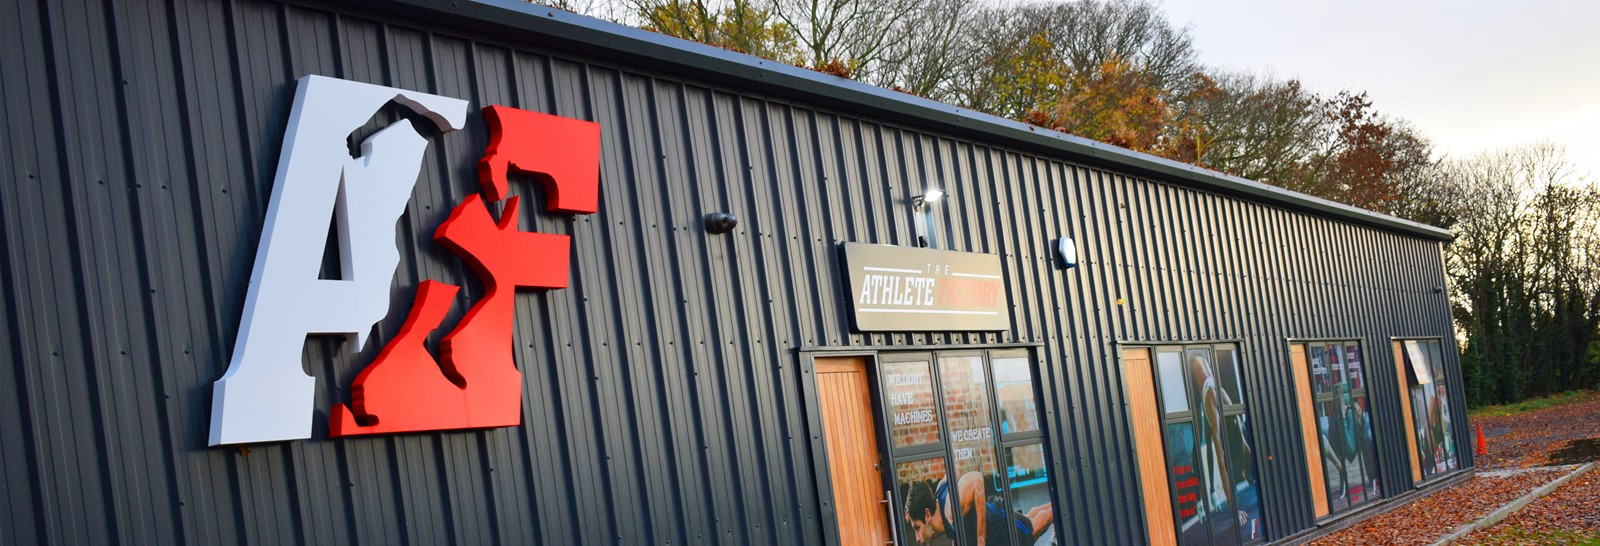 Athlete Fitness large entrance signage in Chester